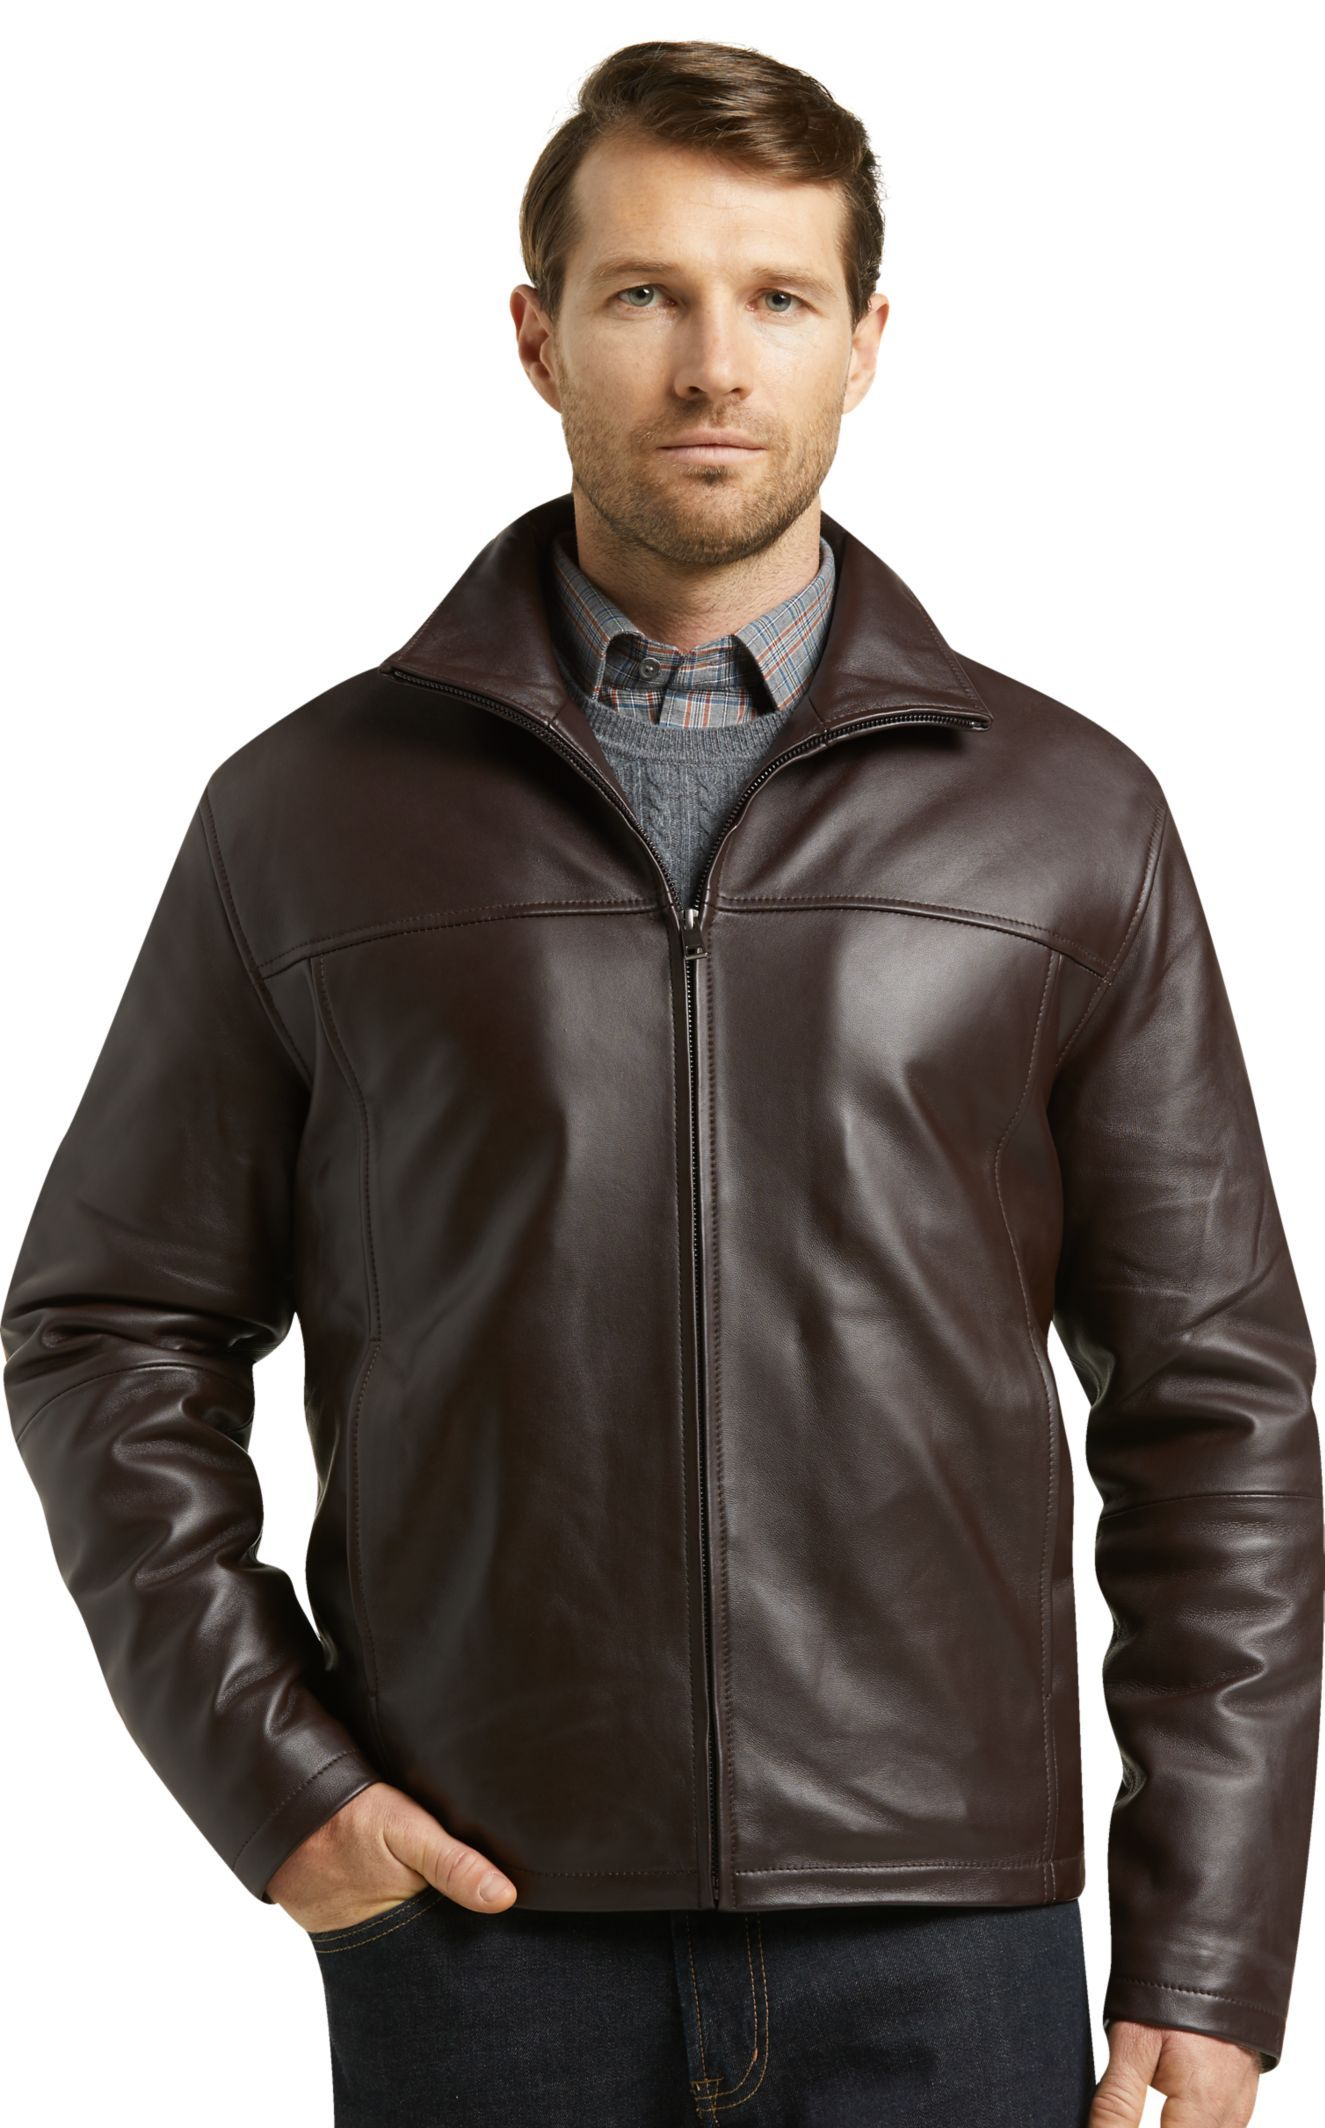 Reserve Collection Traditional Fit Leather Jacket Clearance All Clearance Jos A Bank In 2021 Leather Jacket Leather Jackets Online Jackets [ 2128 x 1325 Pixel ]